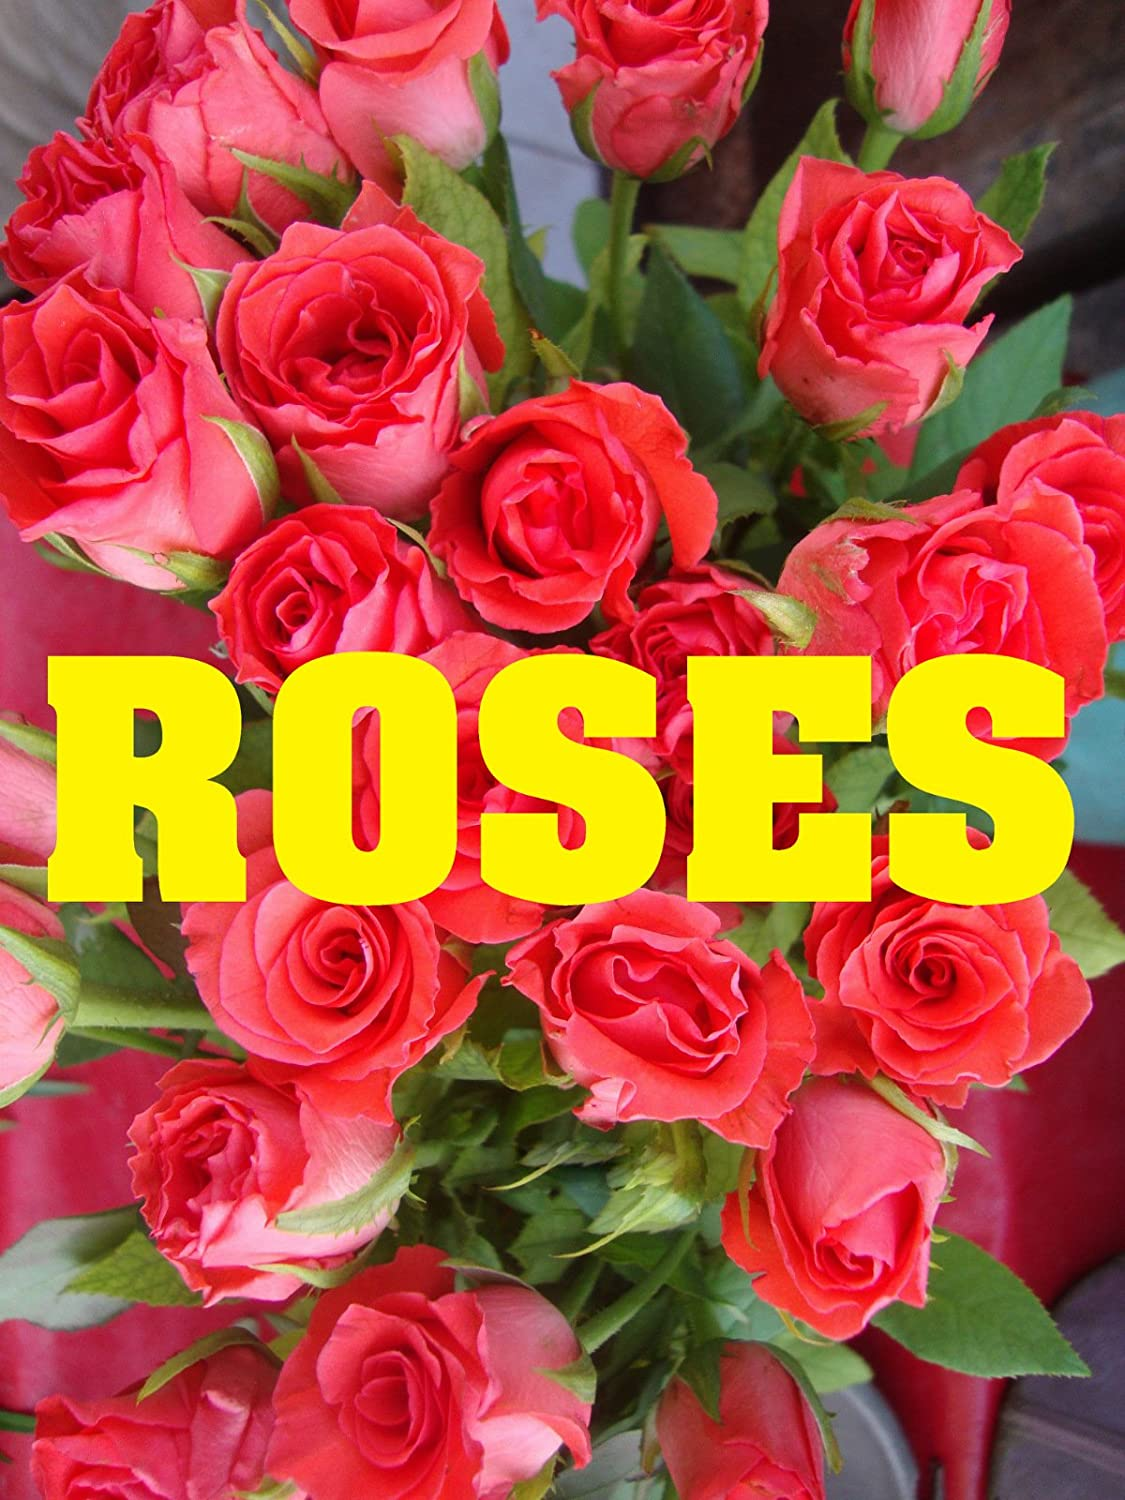 Roses 18x24 Business Store Retail Signs